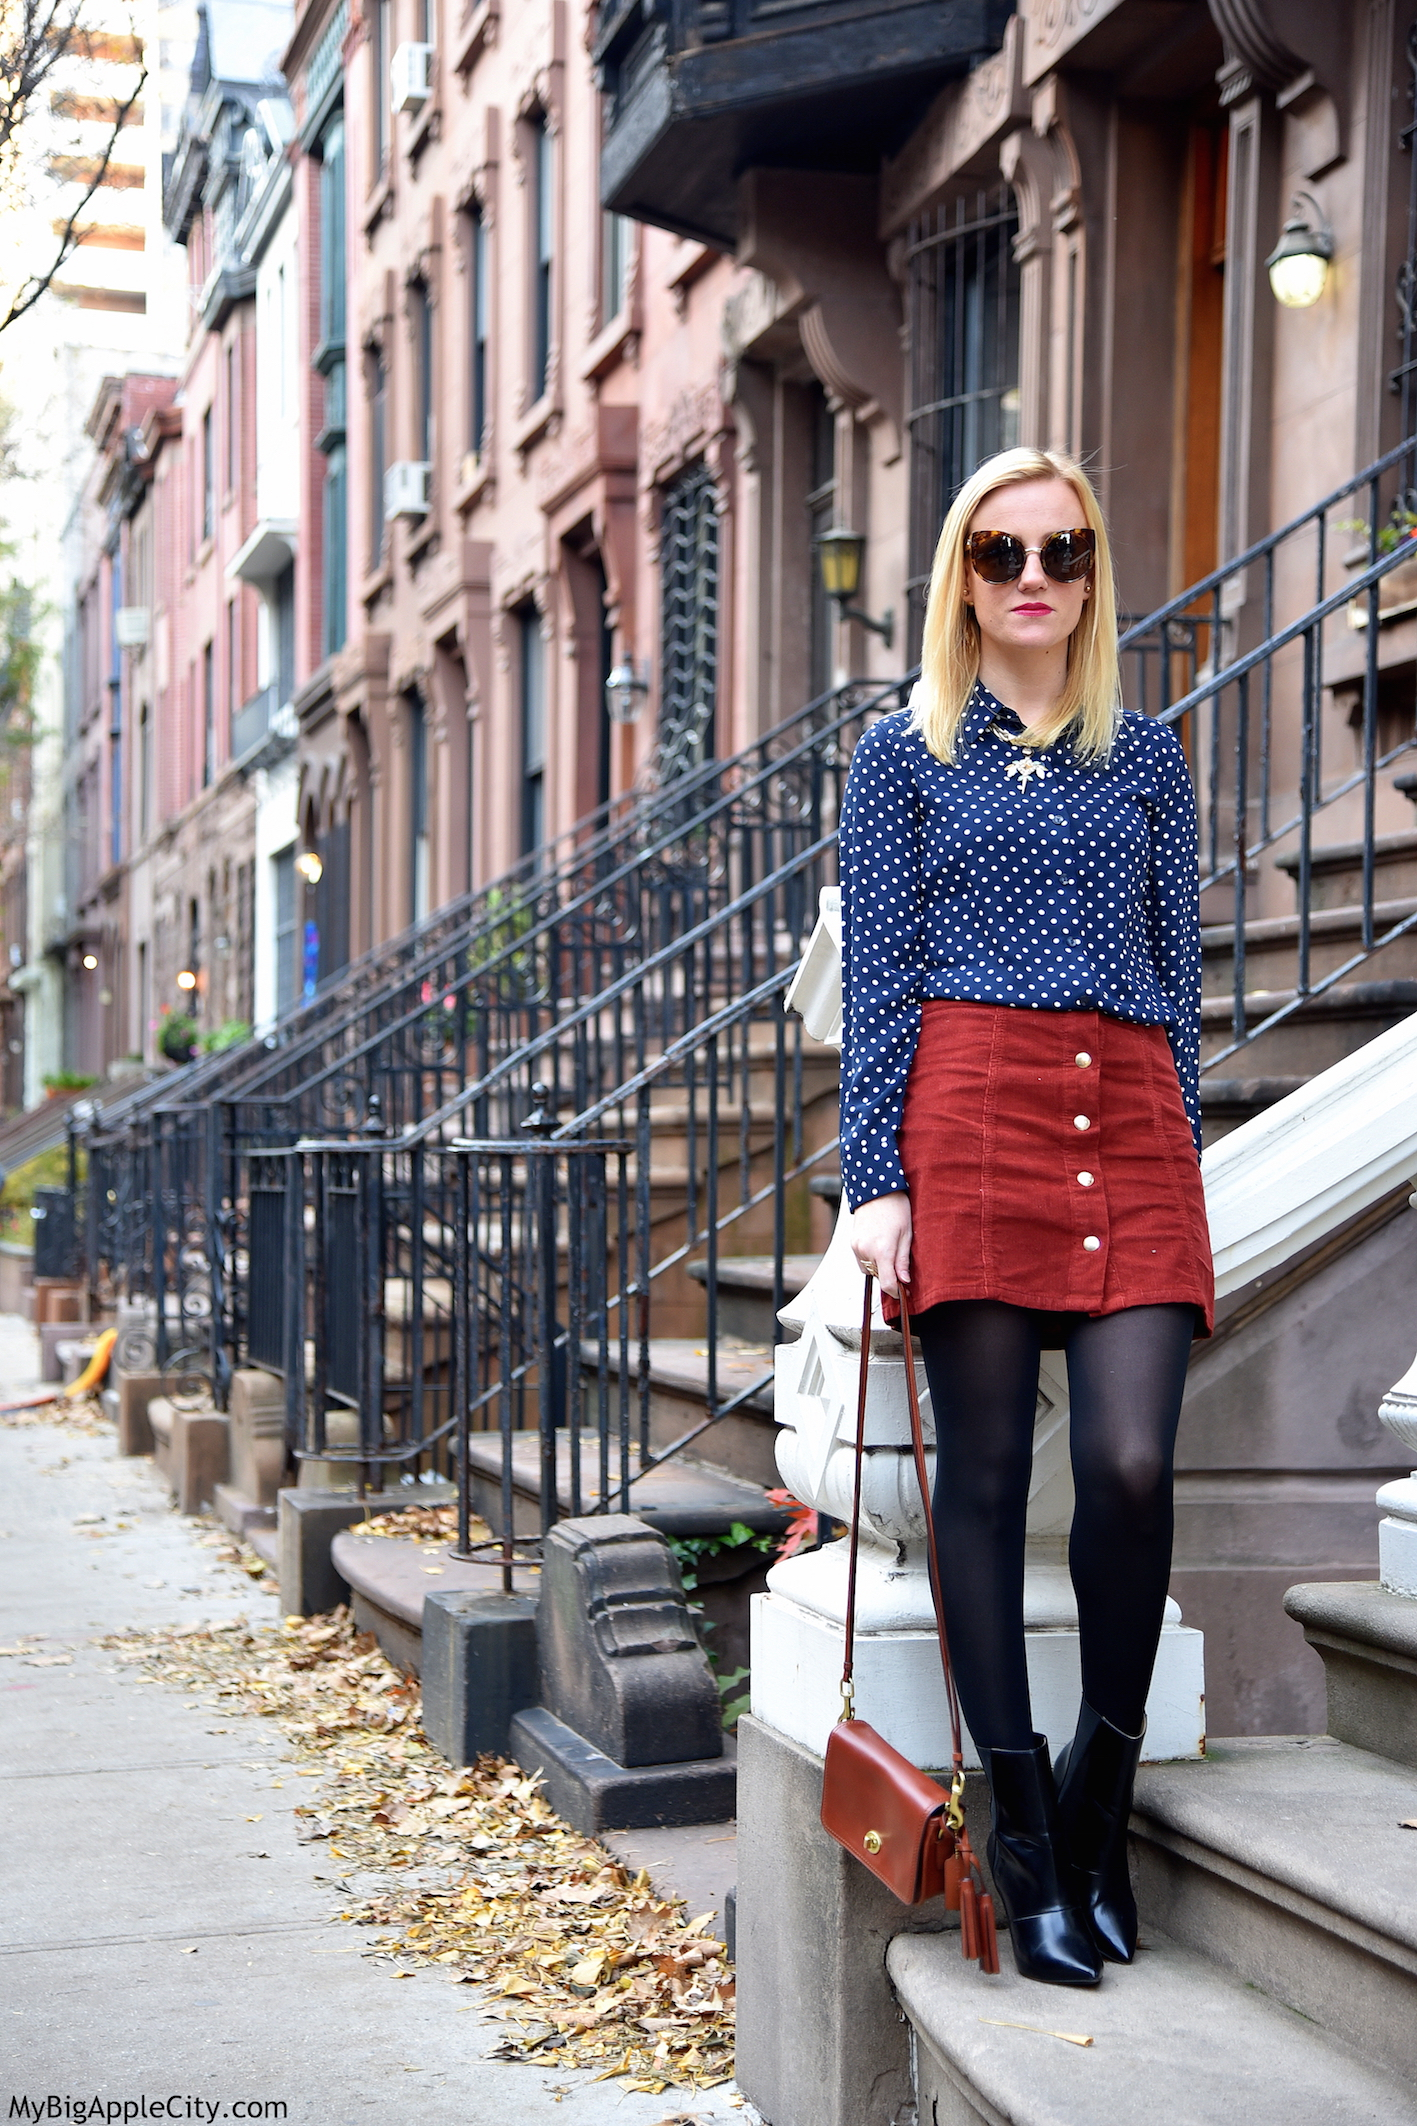 MyBigAppleCity-Fashion-Blogger-New-York-OOTD